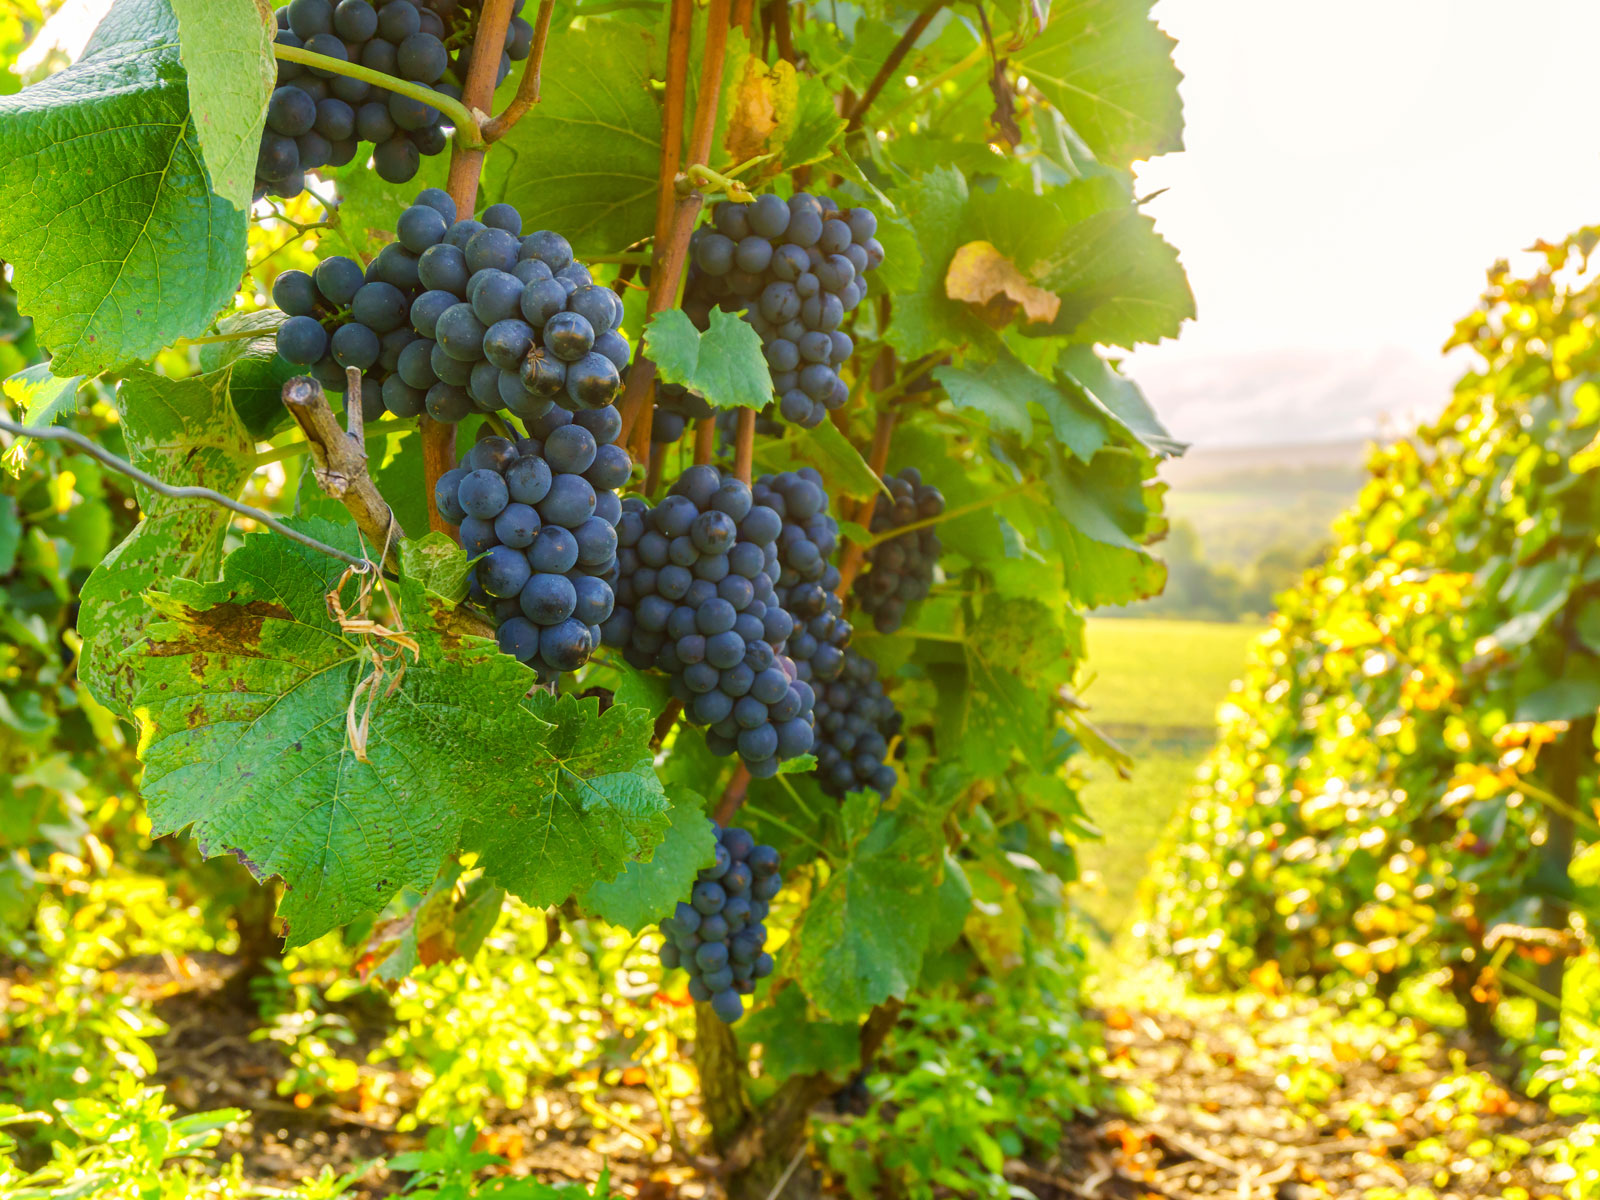 New Rot-Resistant 'Supergrapes' Could Reduce Pesticide Use, But Traditionalists Caution a 'Race to the Bottom'